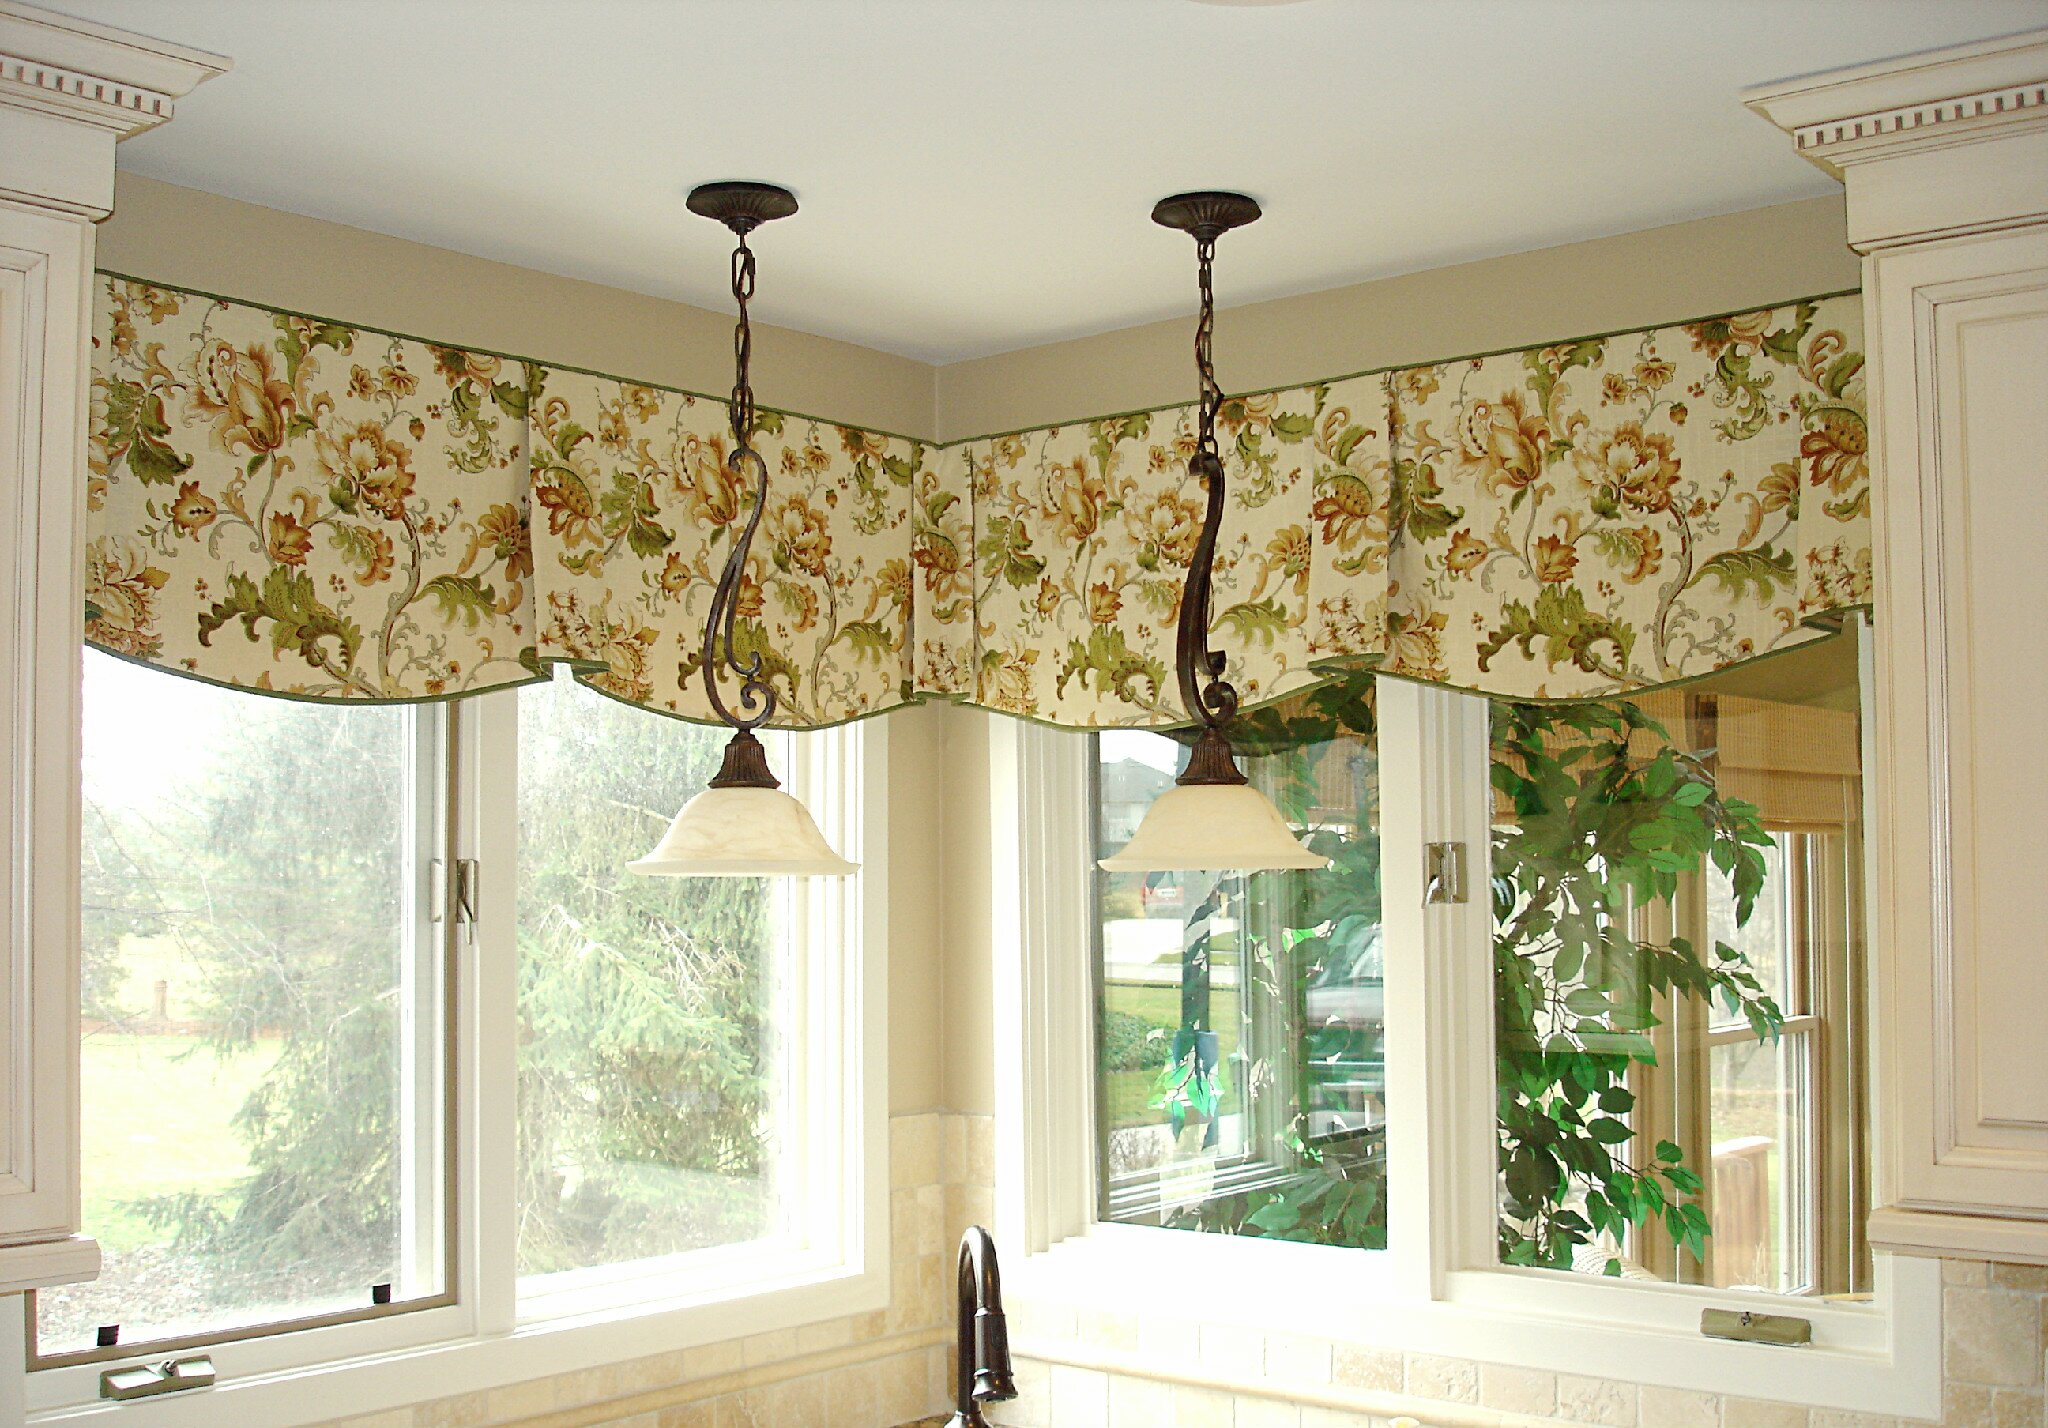 Valance Swag Curtains Excellent Swag Curtains U Valances Youull Love Wayfair With Valance Swag